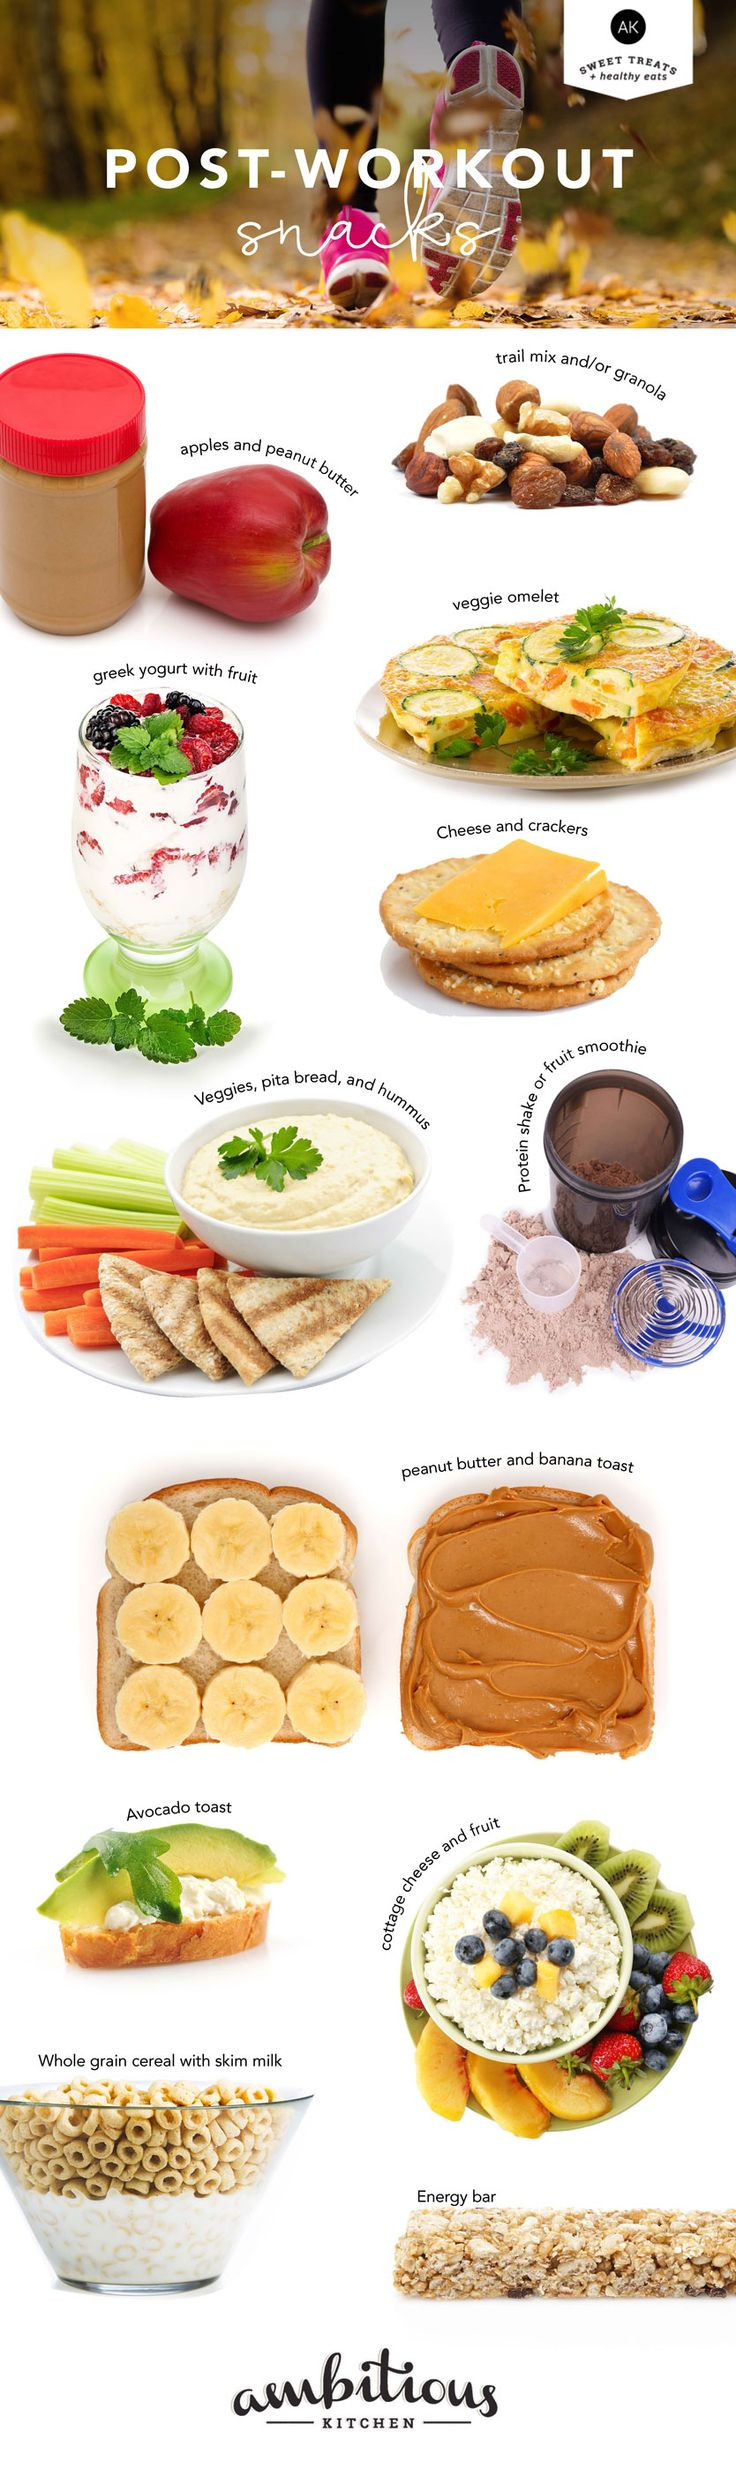 12 Healthy Post Workout Snacks